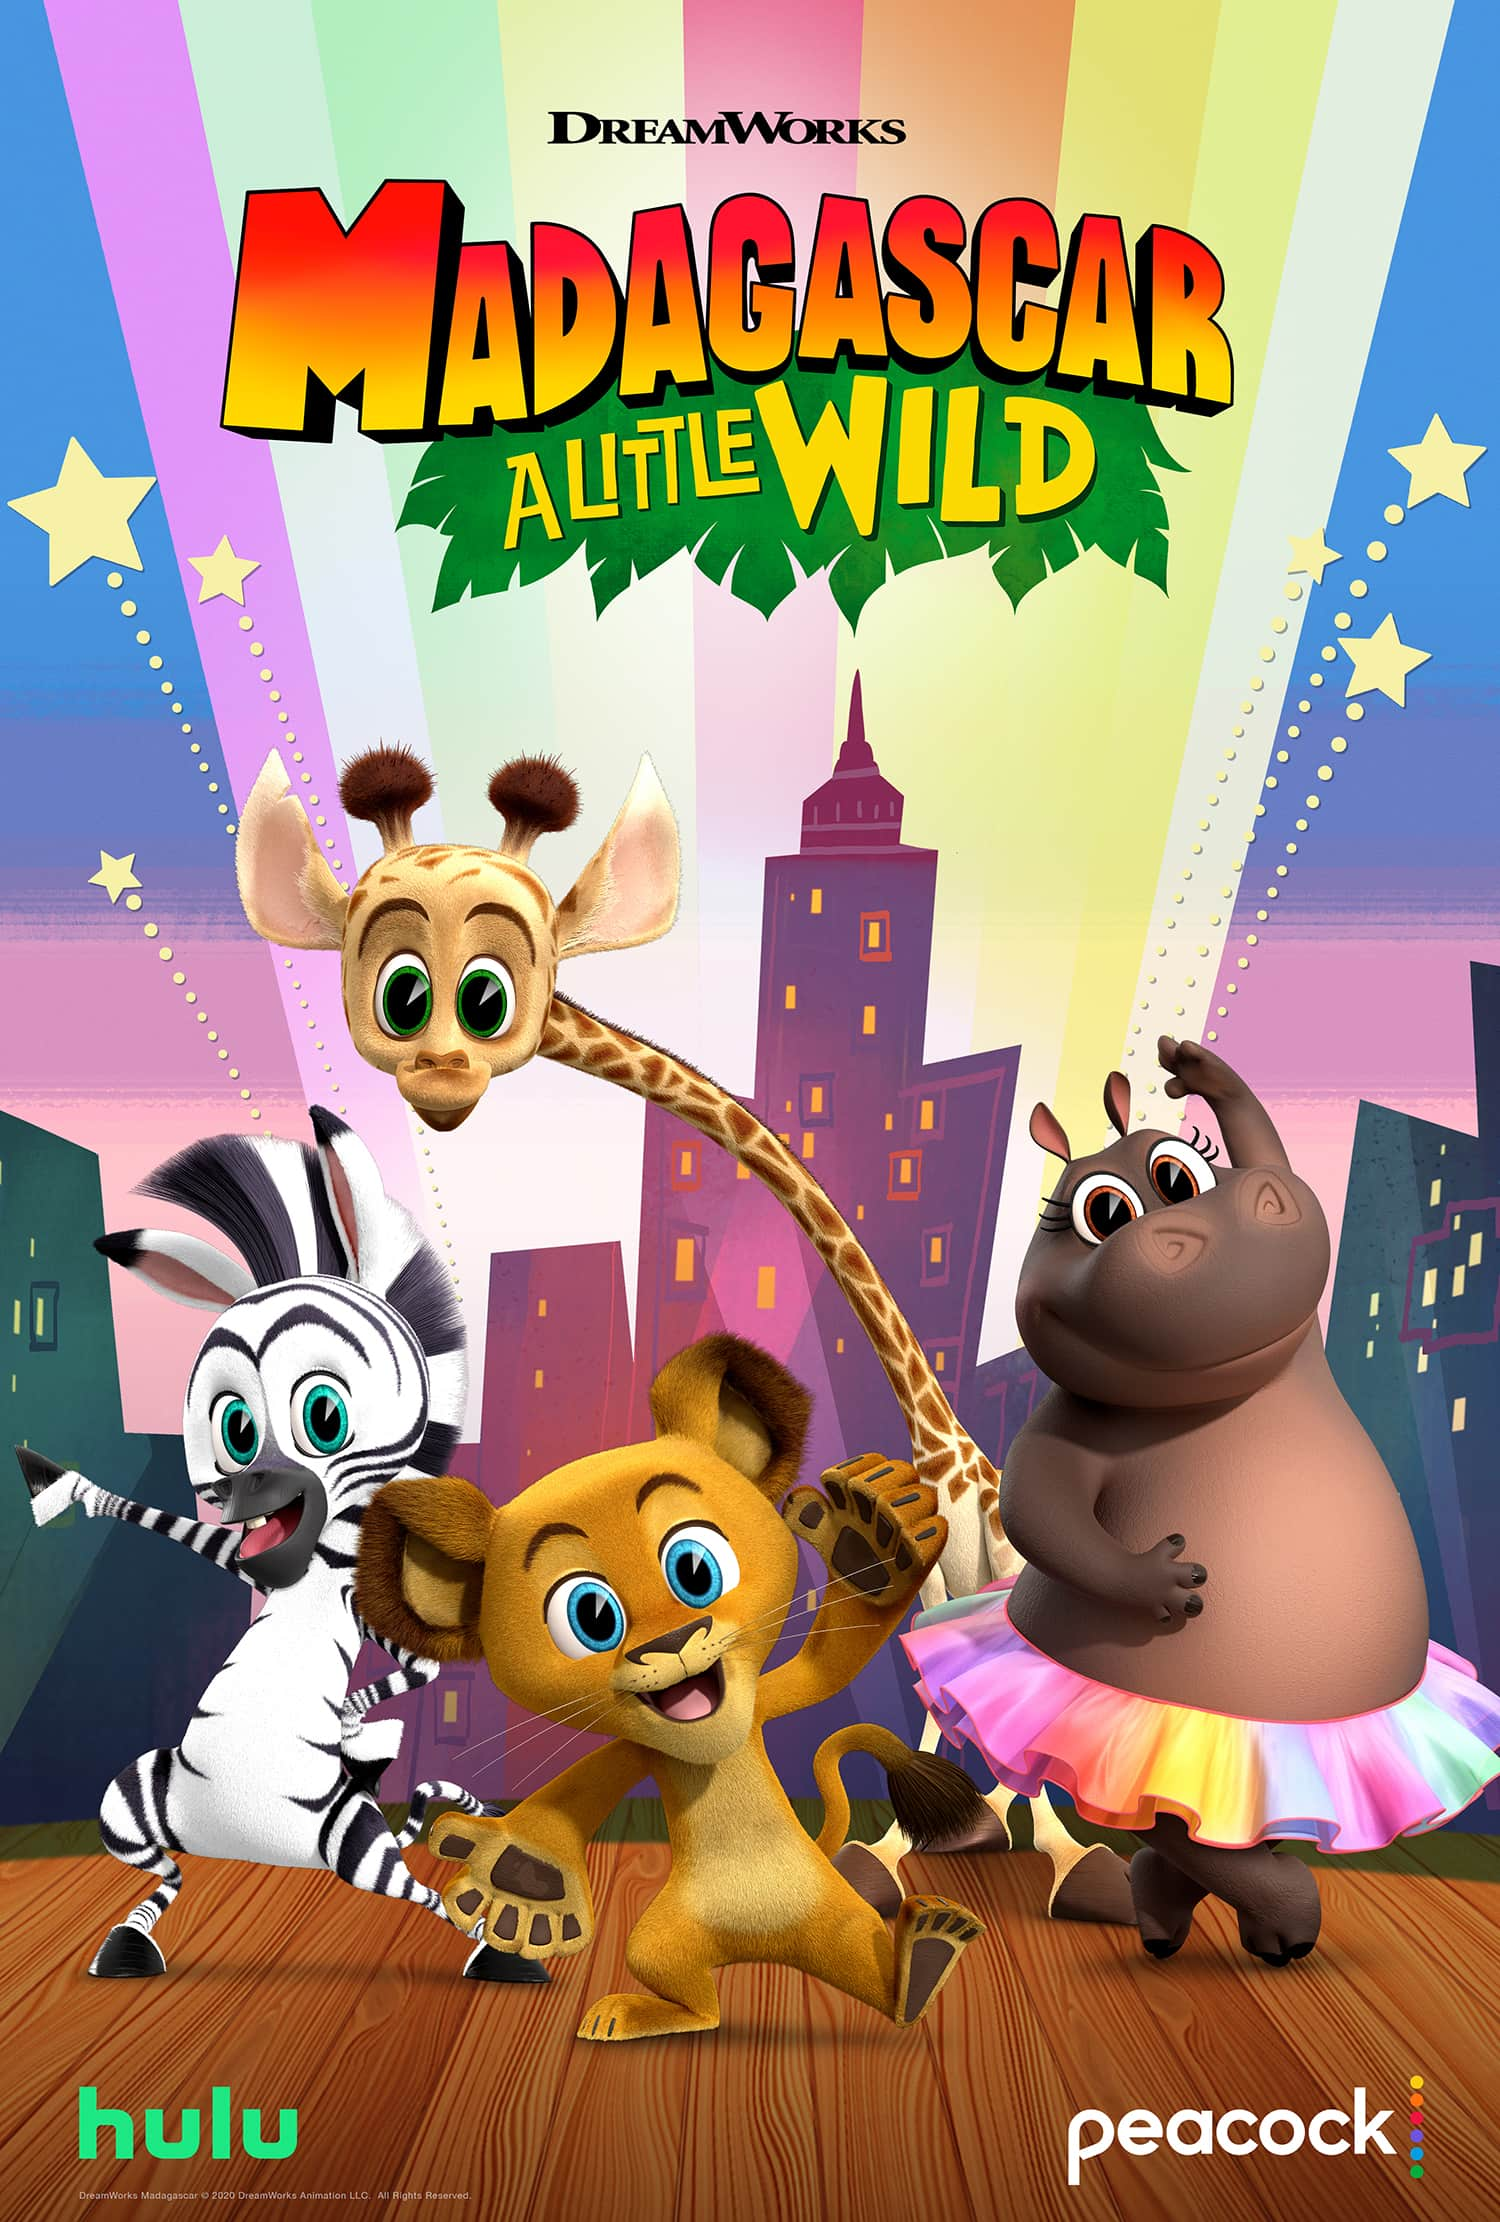 Madagascar A Little Wild Review